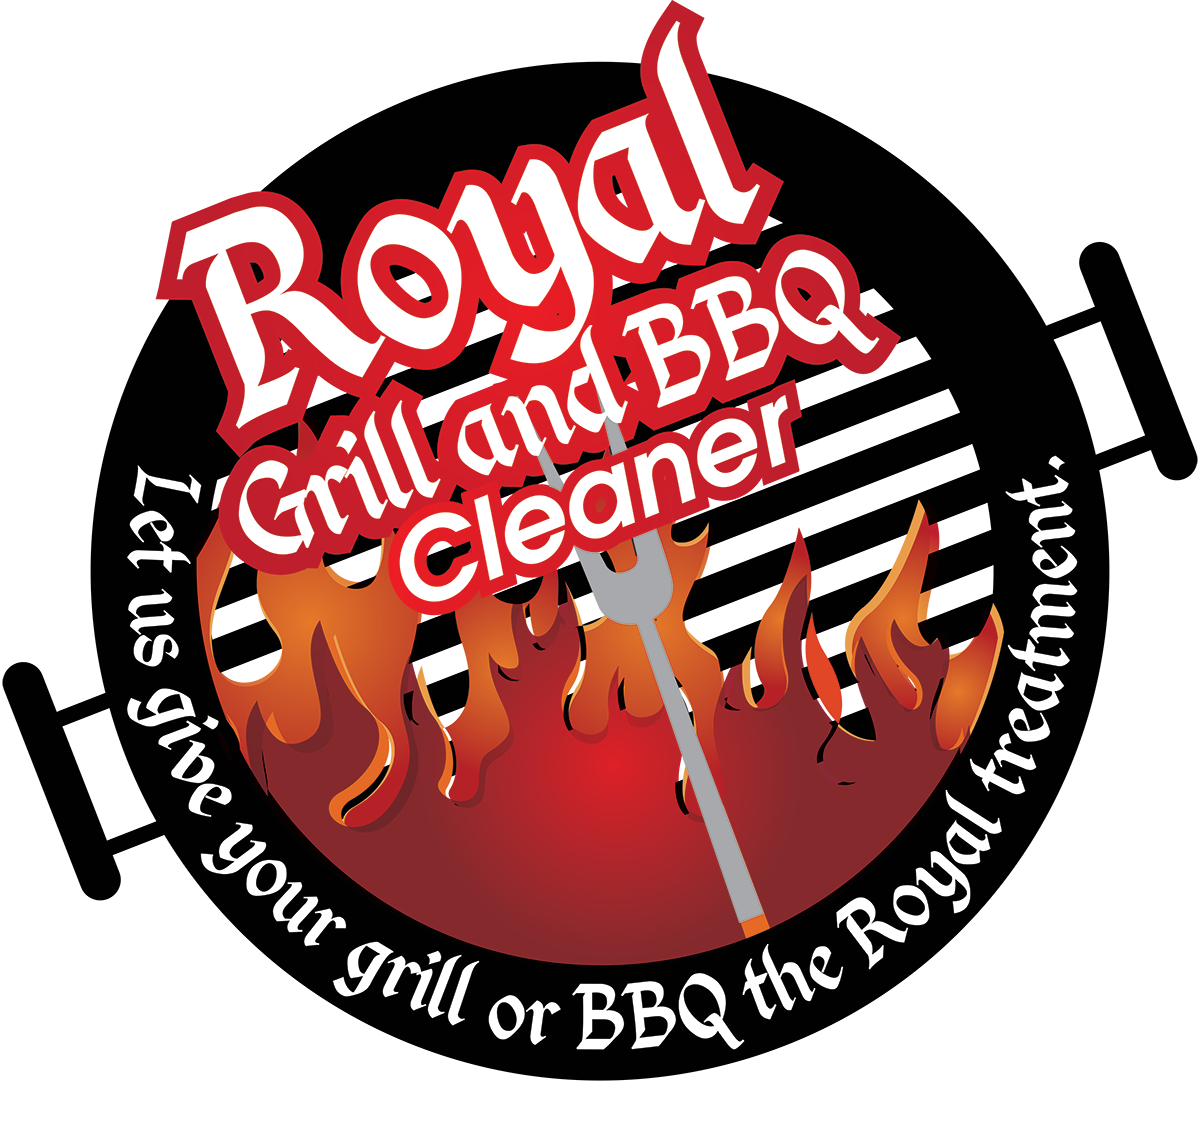 Bar b que grills png. Royal grill and bbq